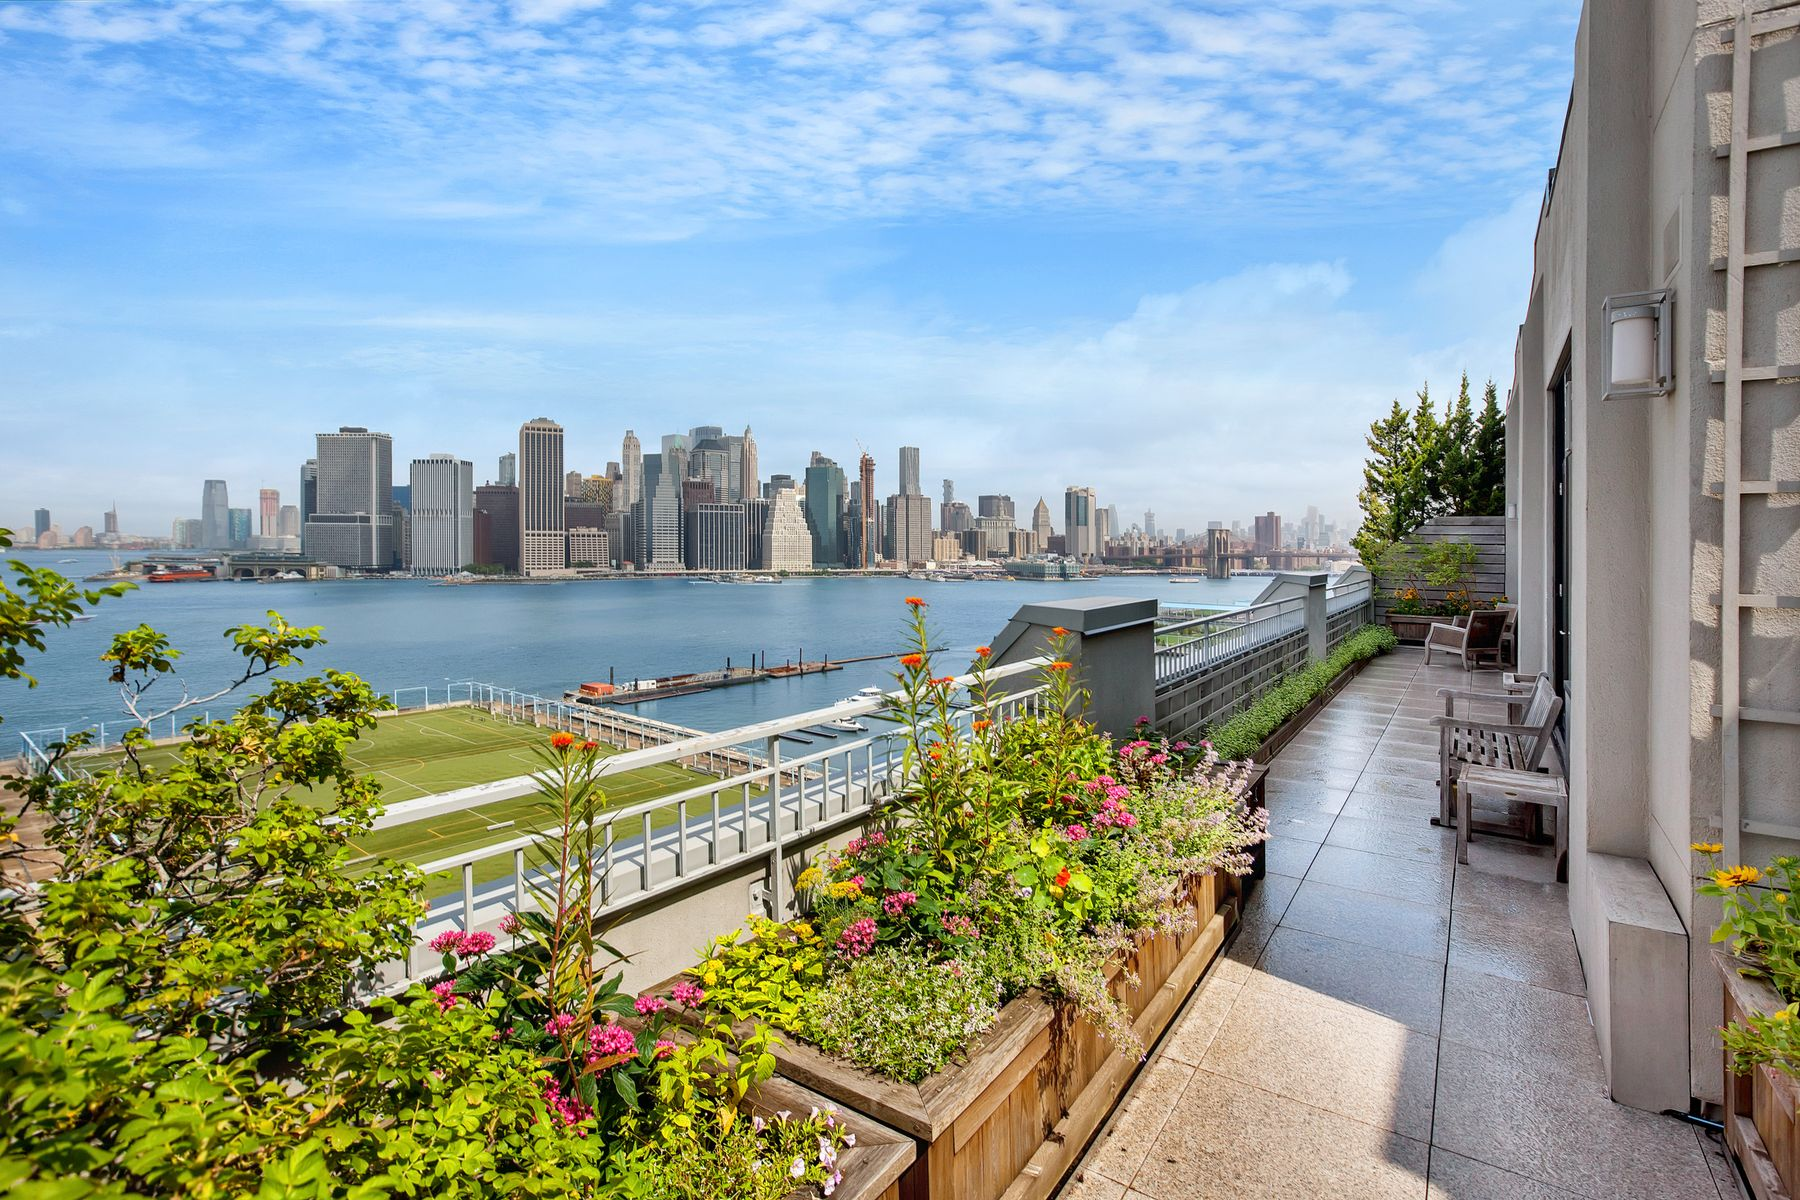 Condominium for Sale at PH Luxury with Unrivaled Space & Views 360 Furman Street Apt 1216 Brooklyn, New York 11201 United States